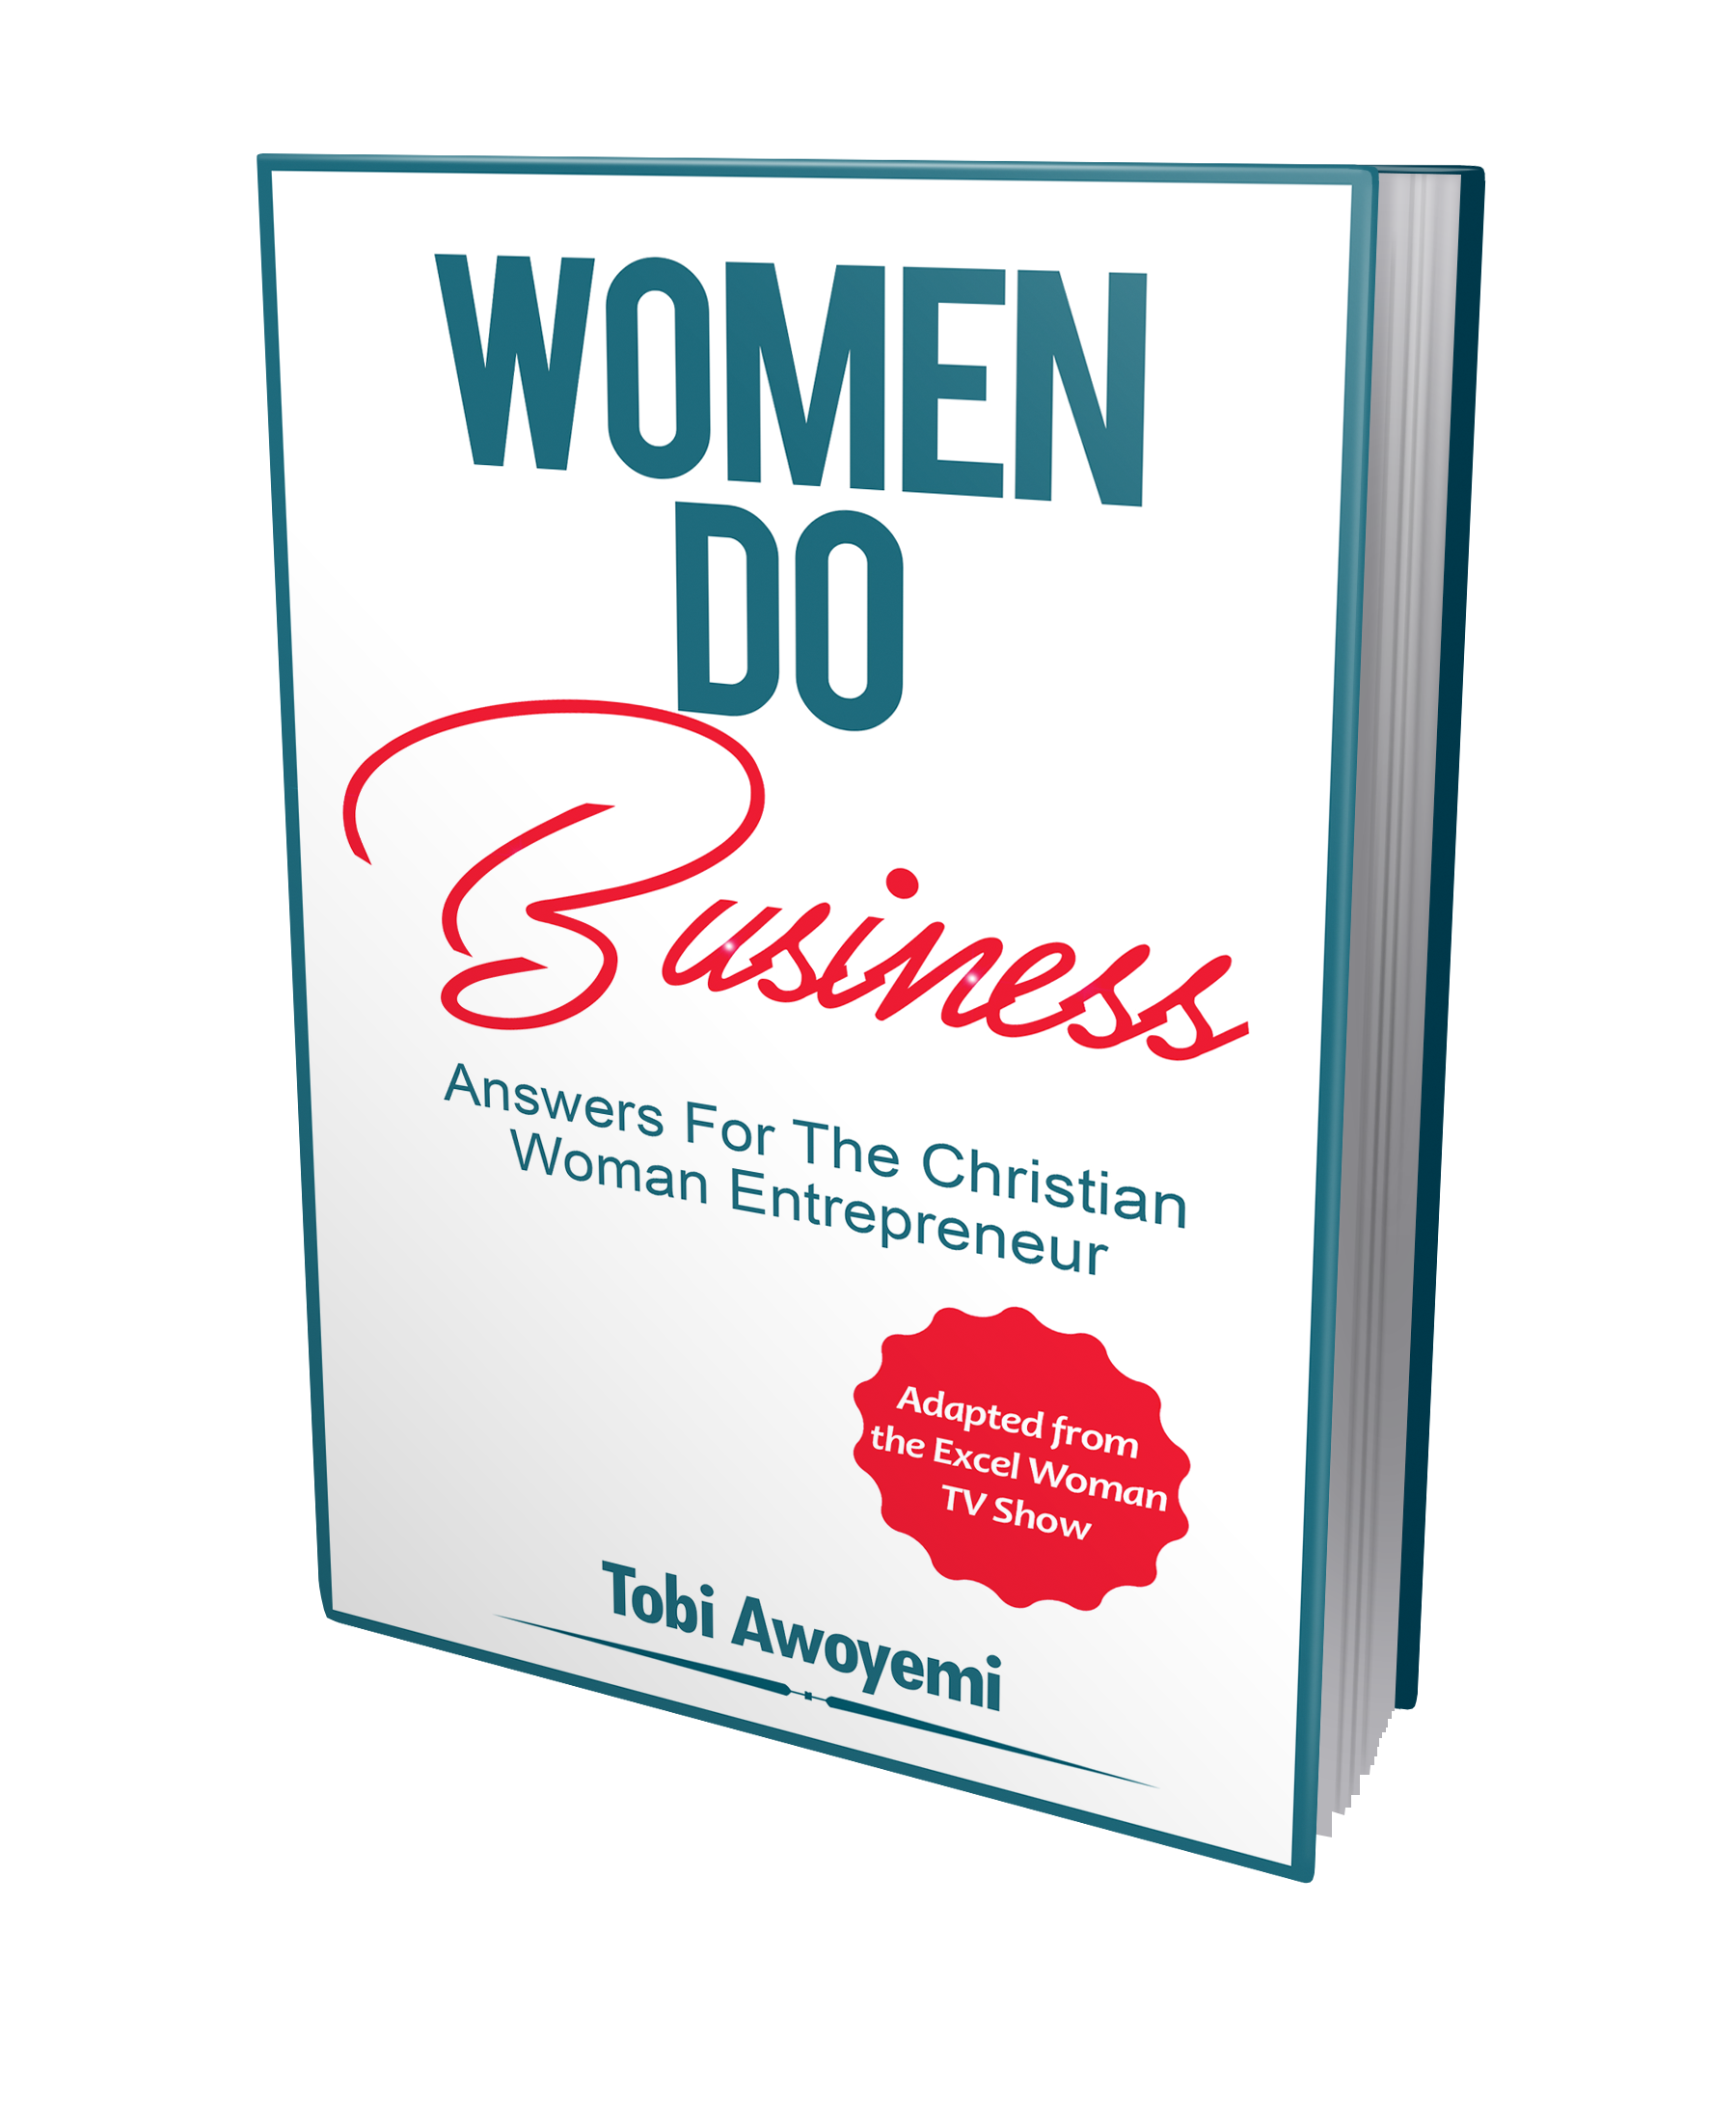 WOMEN DO BUSINESS BOOK by Tobi Awoyemi